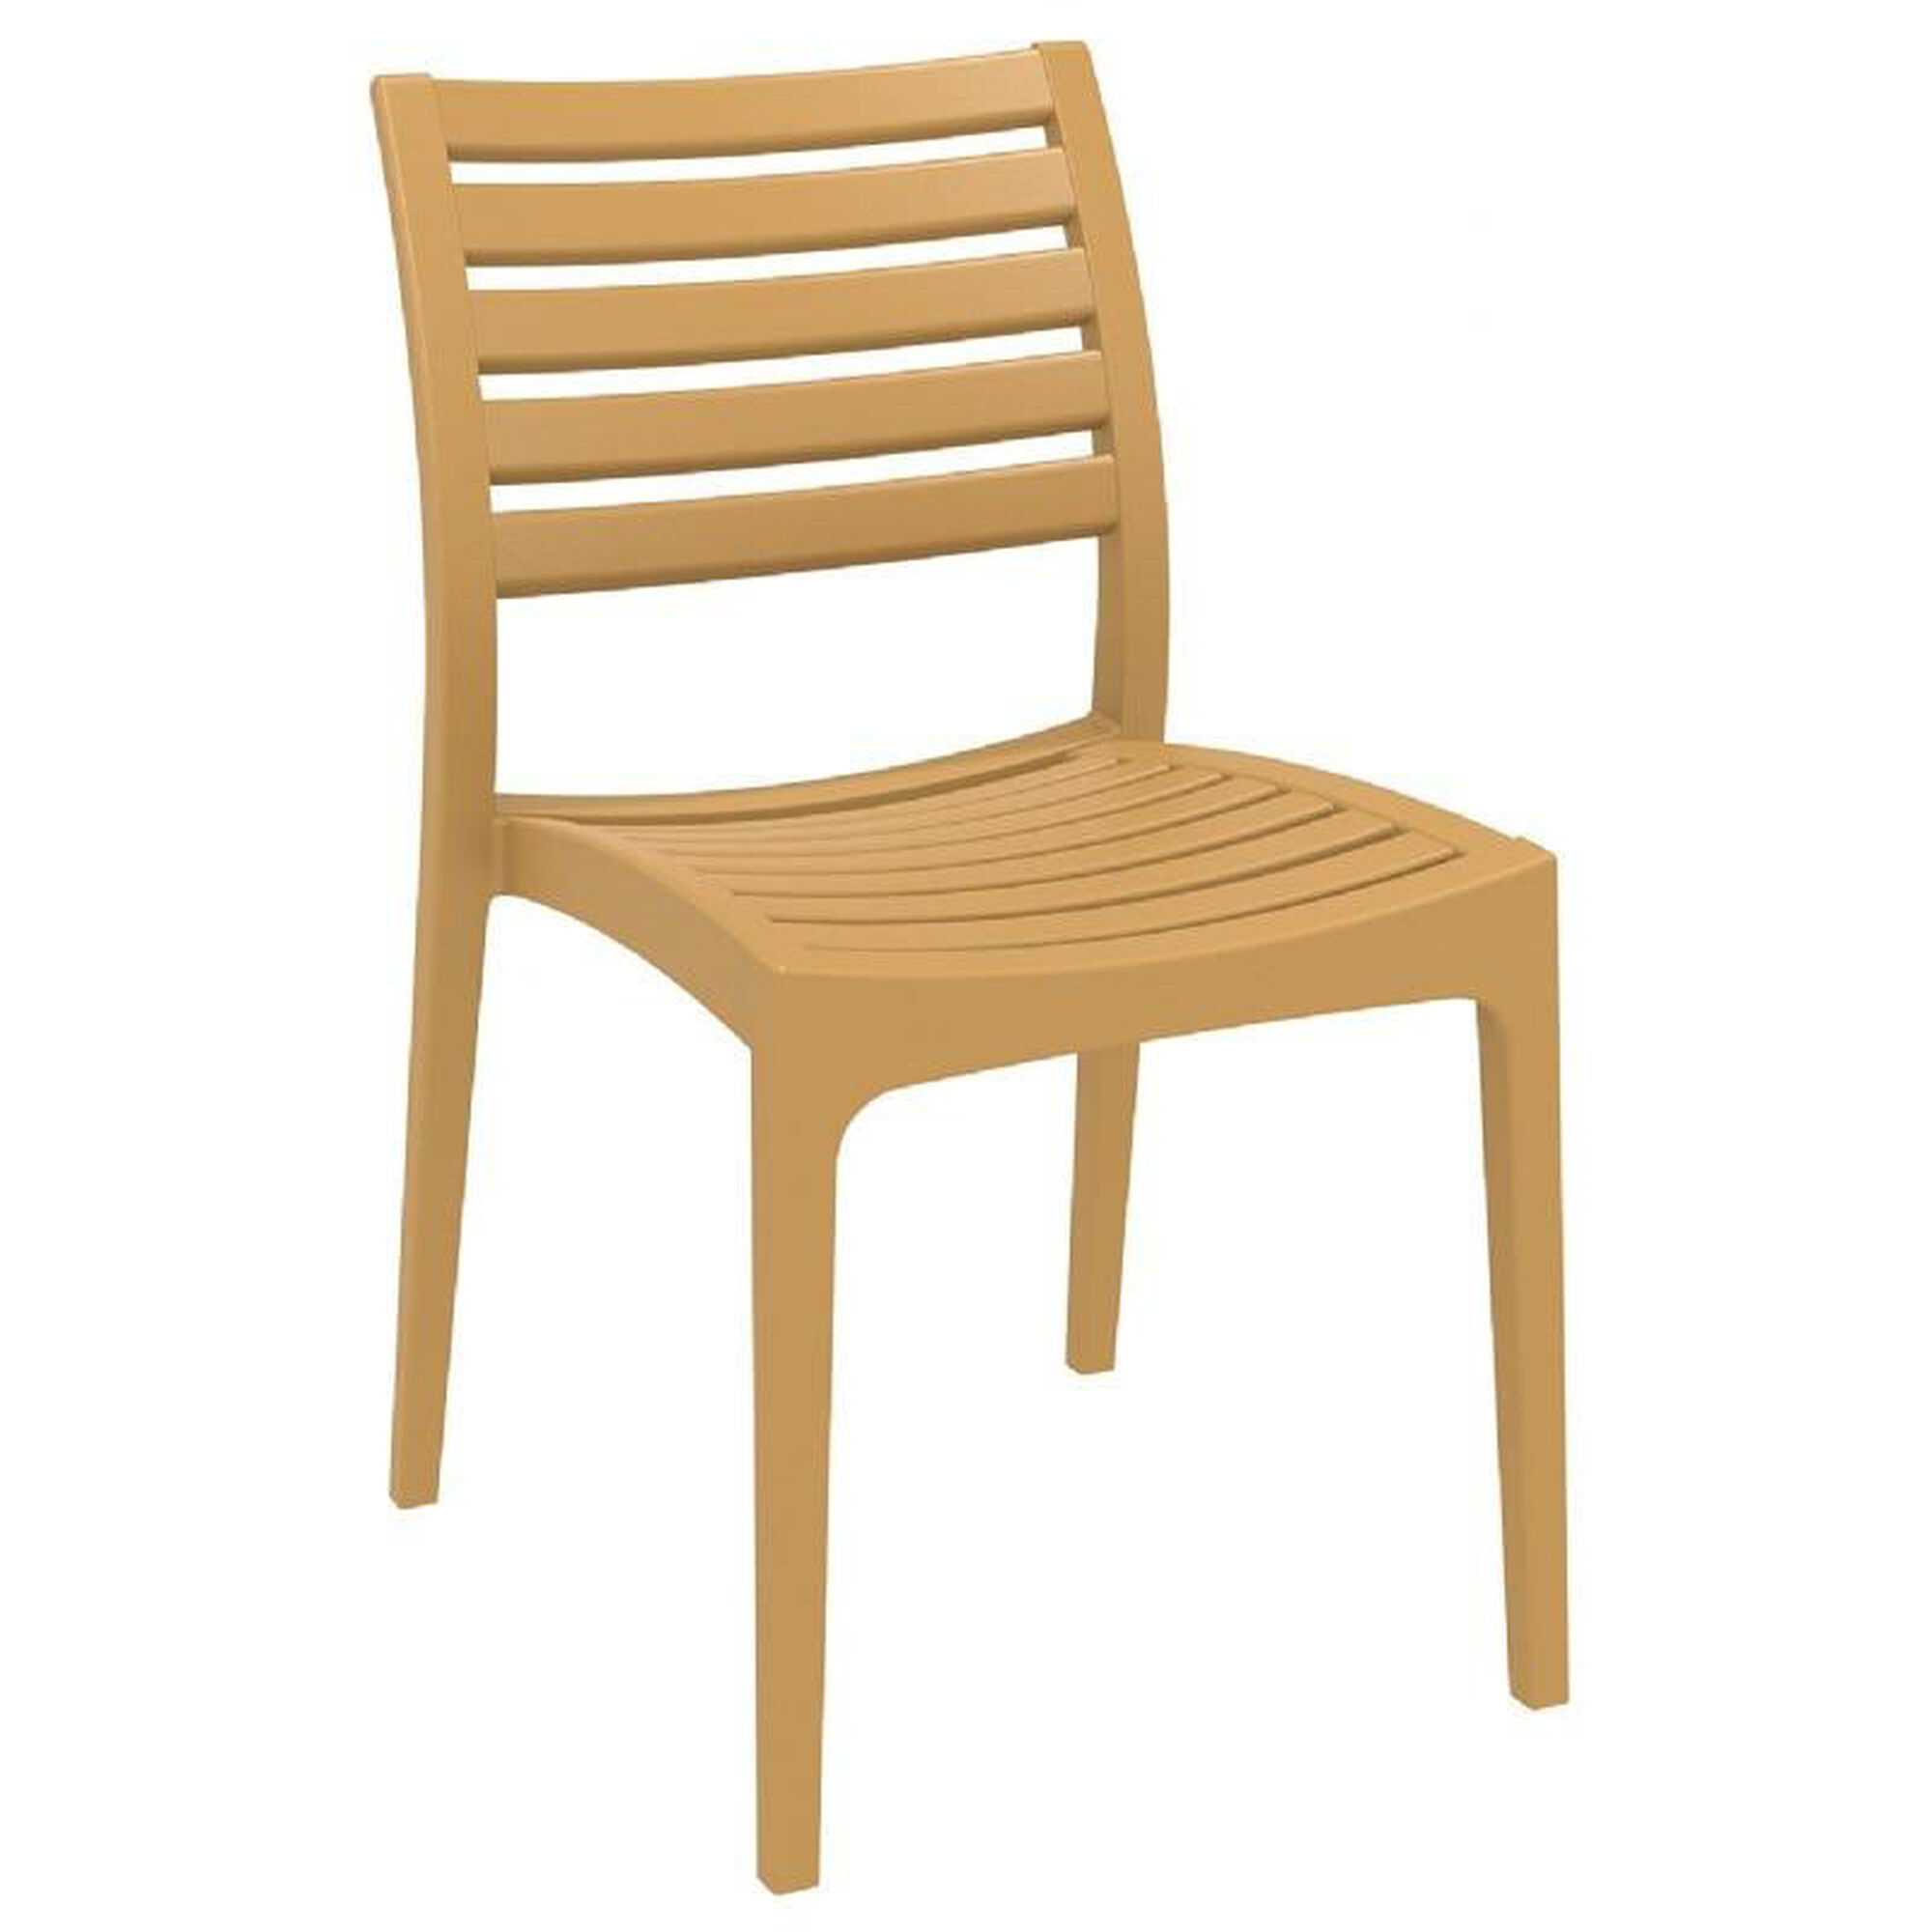 Outstanding Ares Resin Outdoor Stackable Dining Chair Teak Brown Ncnpc Chair Design For Home Ncnpcorg